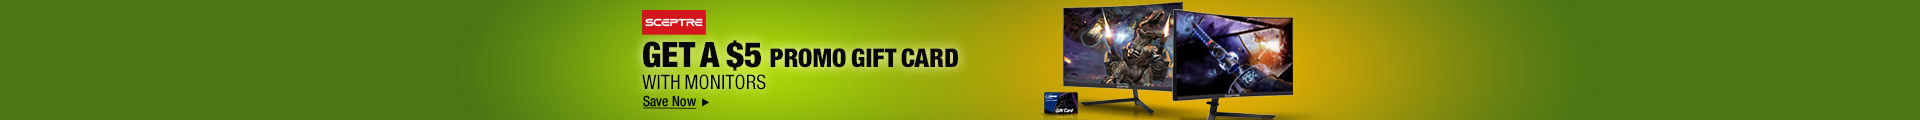 GET A $5 PROMO GIFT CARD